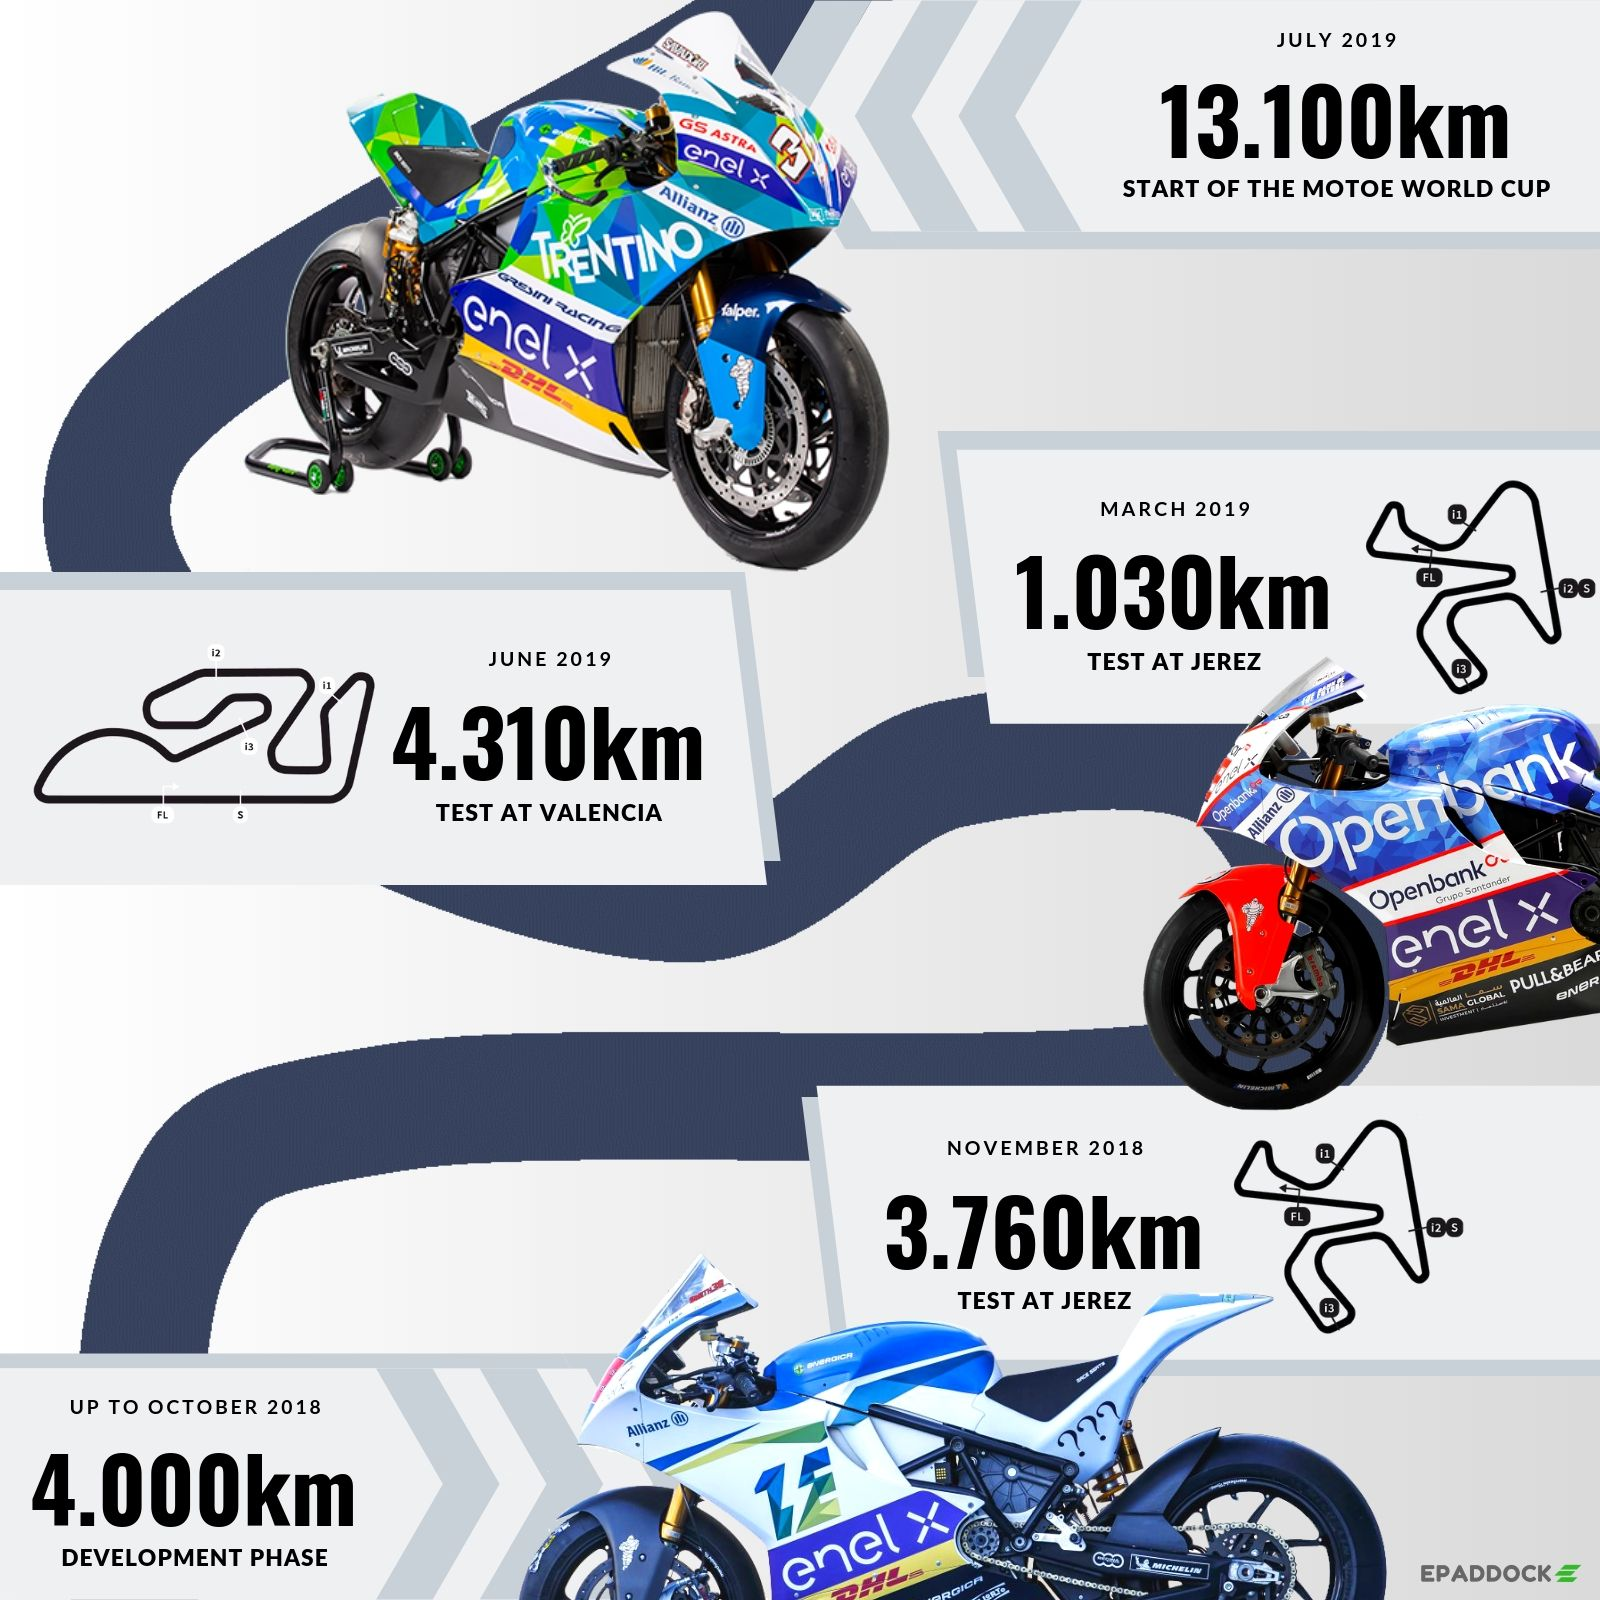 MotoE World Cup: the technical data sheet of the motorcycle